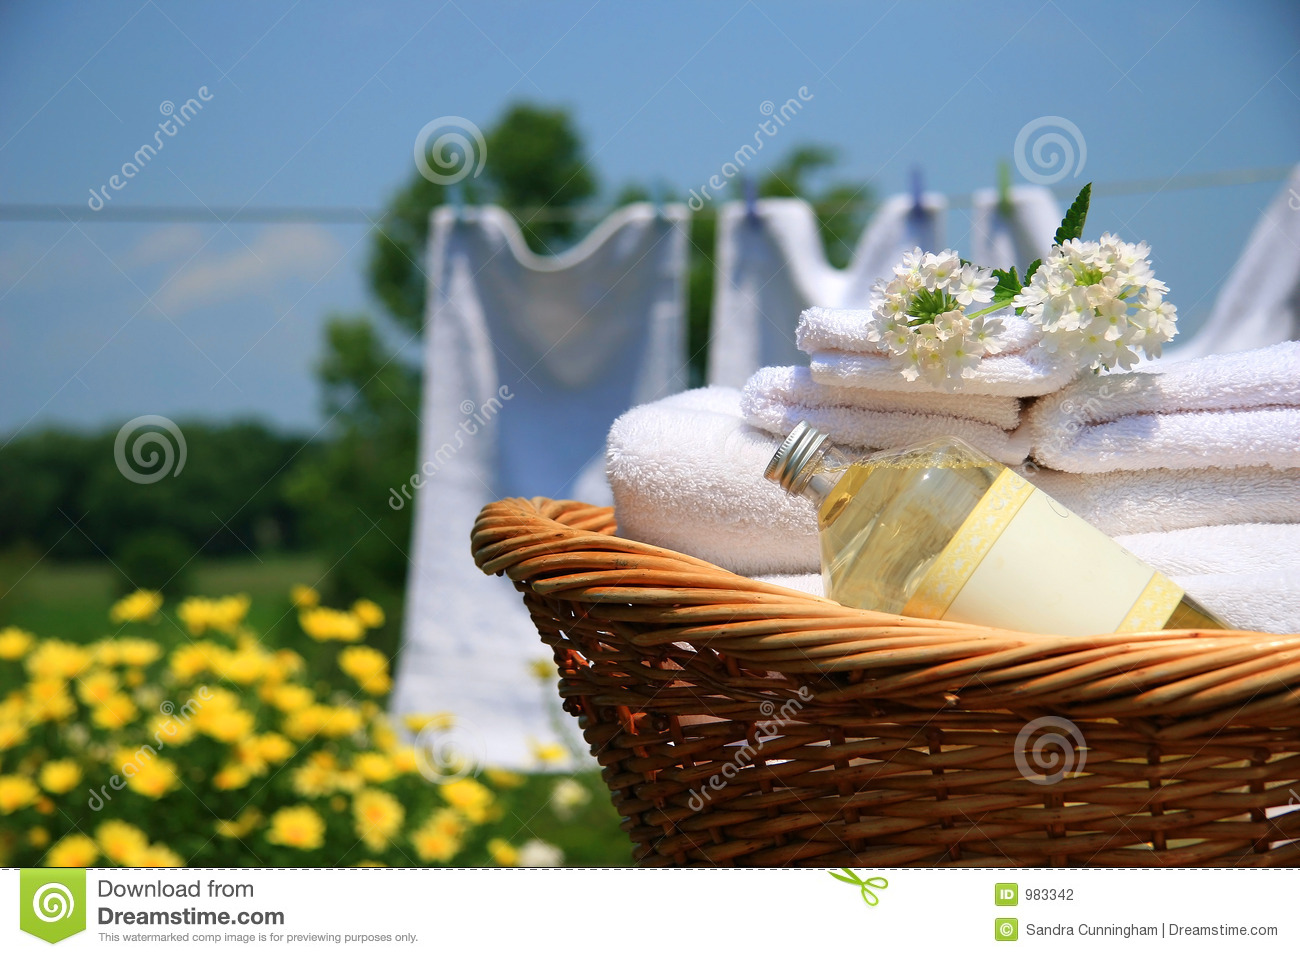 Smell of fresh towels